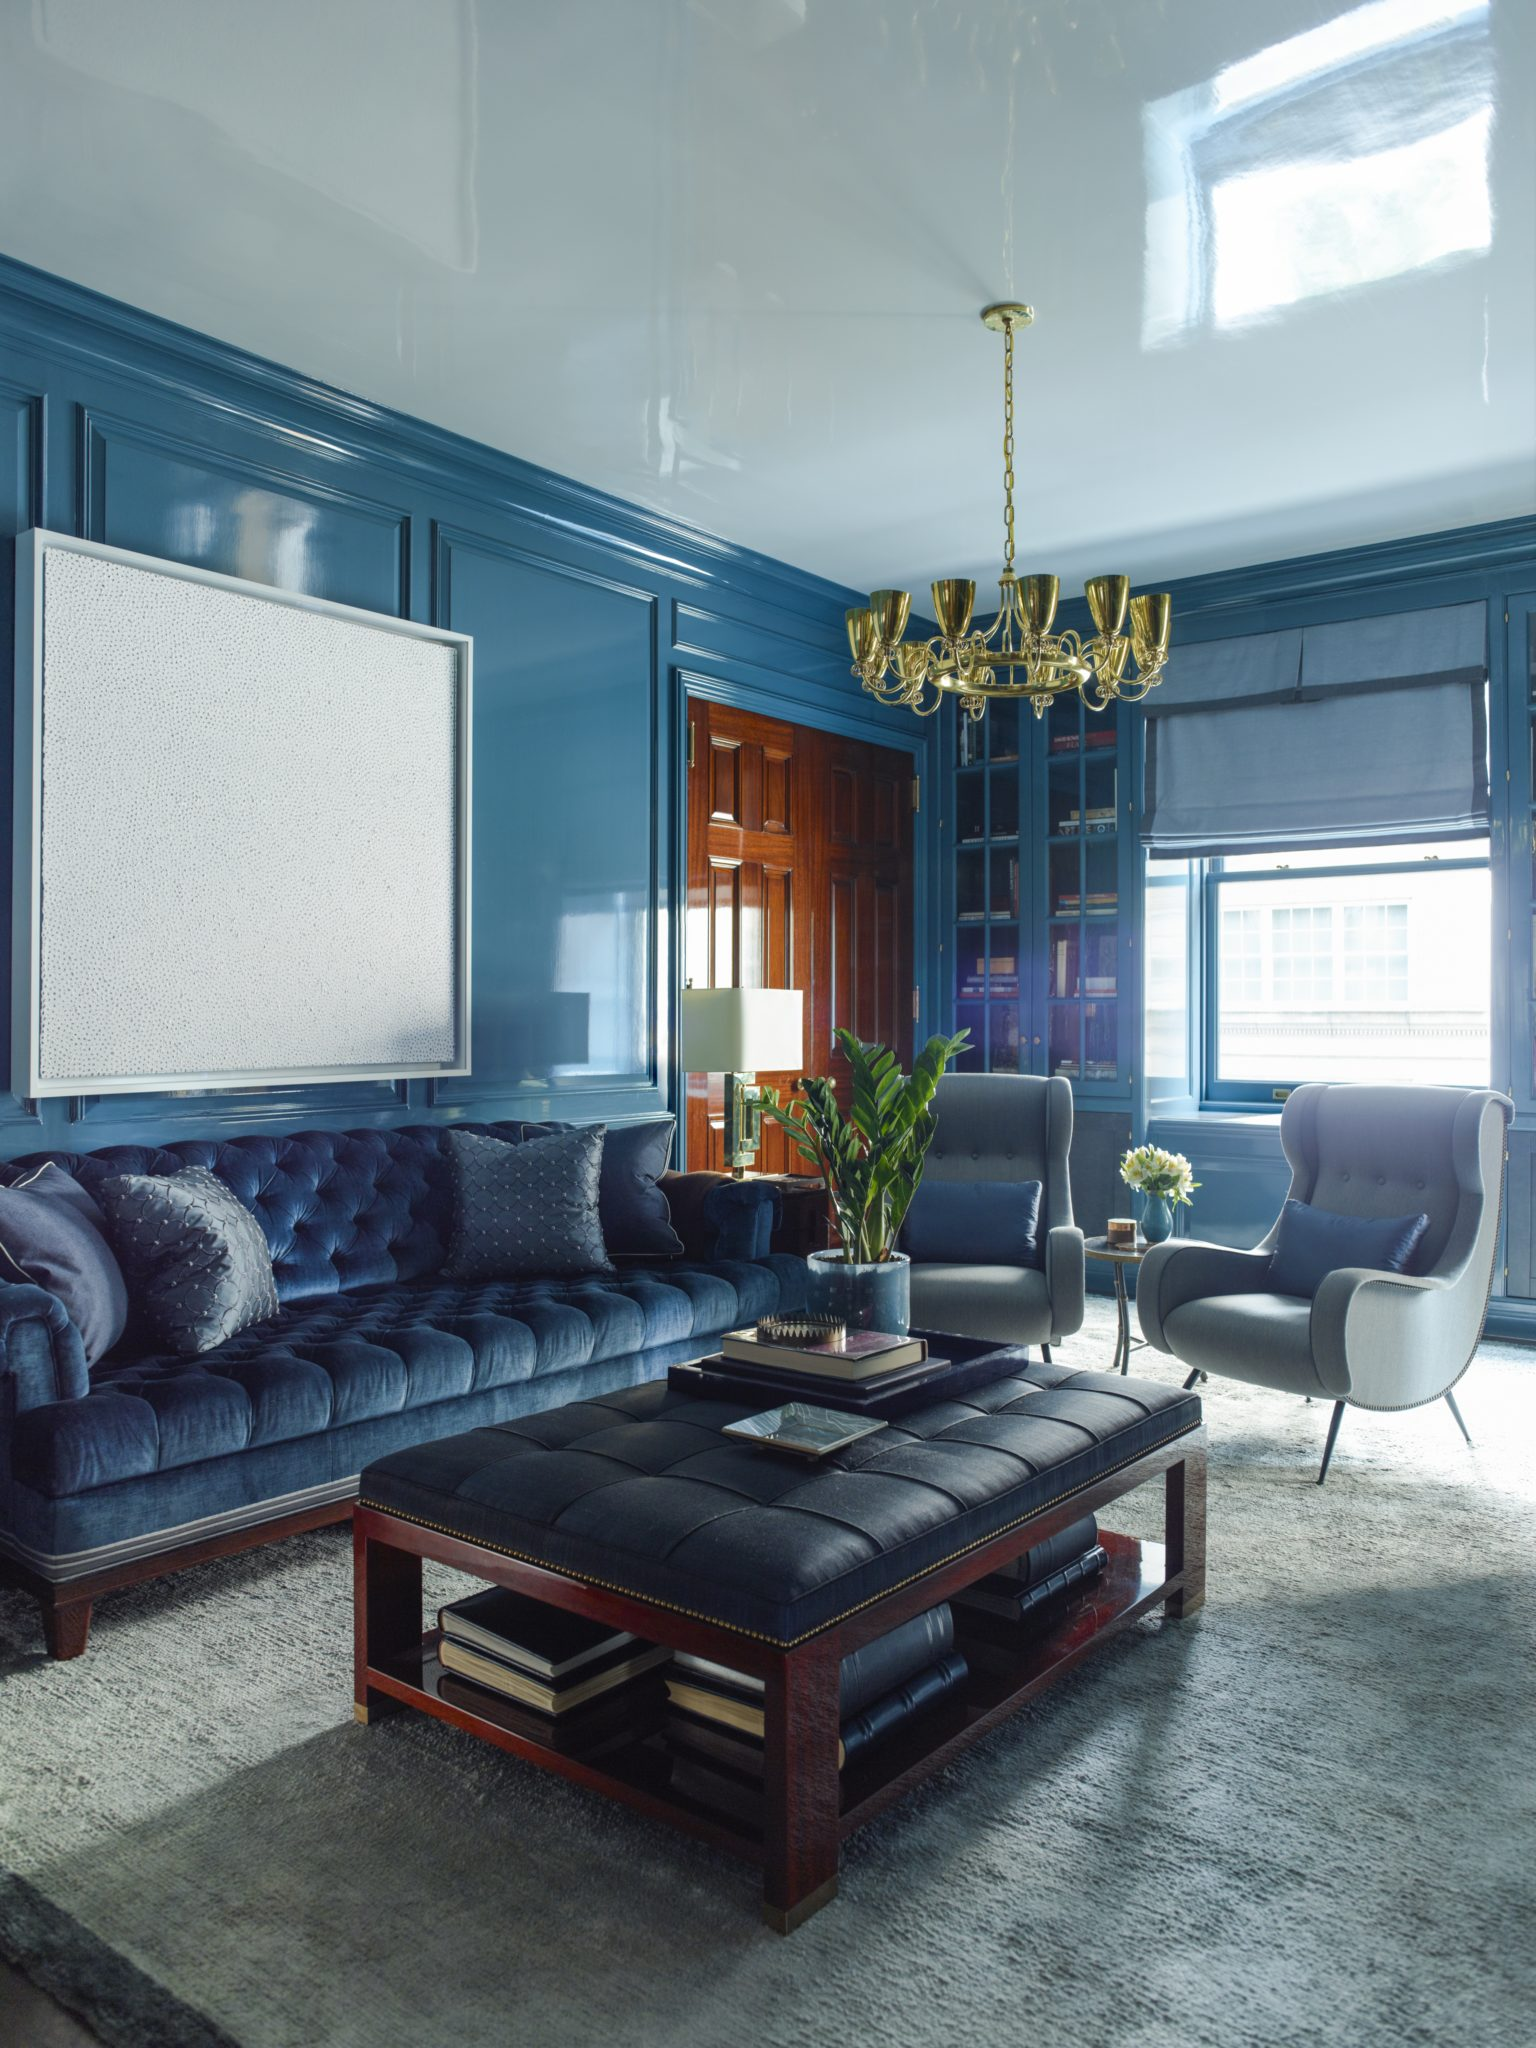 In aFifth Avenue duplex in a1912 buildingbyMcKim, Mead & White, Gambrel had thesitting room lacquered ahigh-gloss peacock-blue as a counterpoint to the adjacent waxed pine study;thevintage Italian club chairs areby Paolo Buffa.